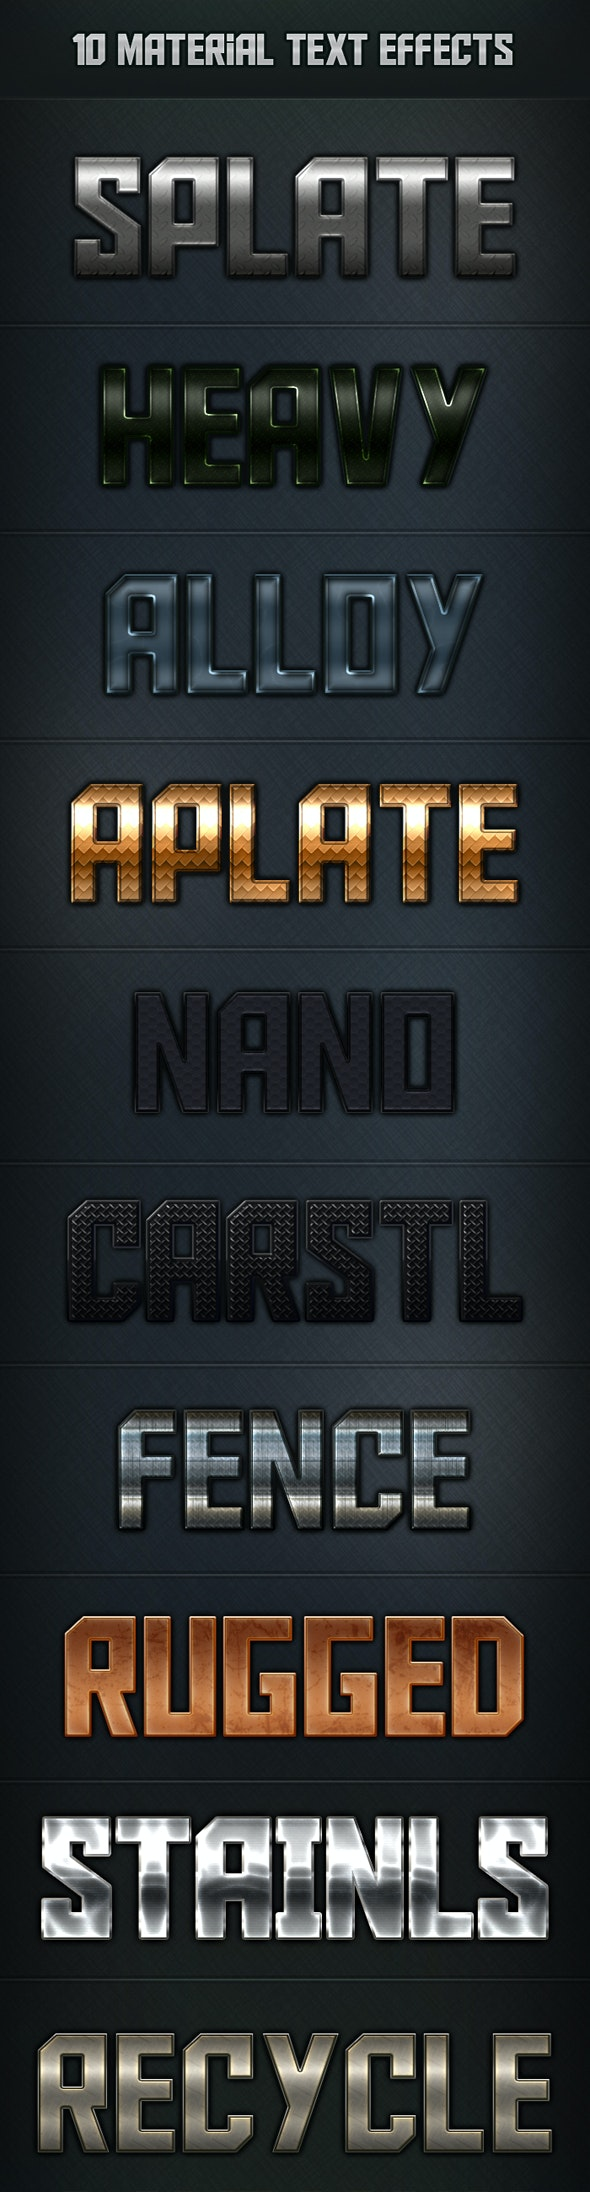 10 Materials Text Effects - Text Effects Styles